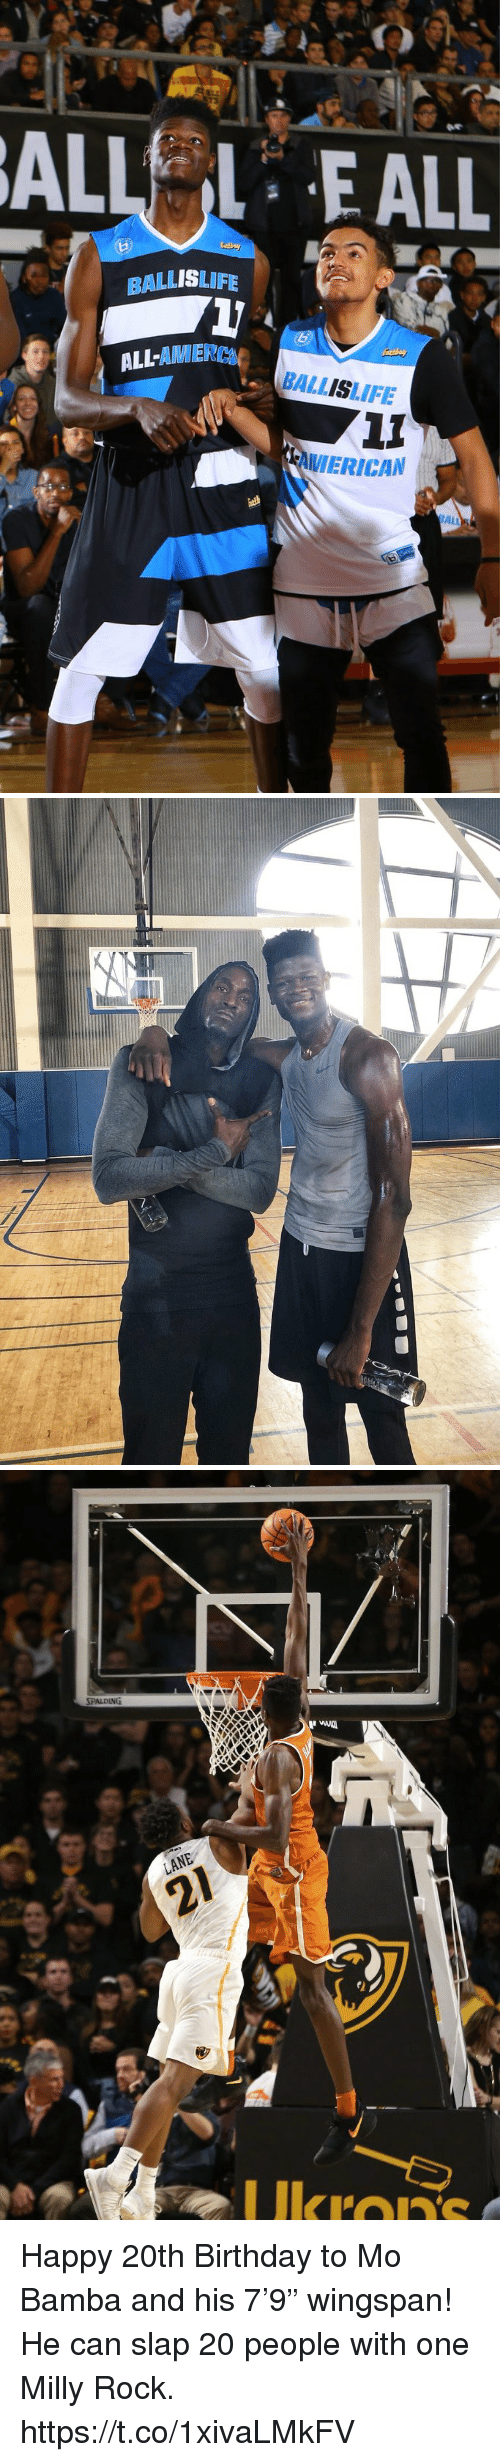 "Birthday, Memes, and Milly Rock: ALLEALL  BALLISLIFE  LL-AMIER  BALLISLIFE  VIERICAN  ALL   Ukron Happy 20th Birthday to Mo Bamba and his 7'9"" wingspan!  He can slap 20 people with one Milly Rock. https://t.co/1xivaLMkFV"